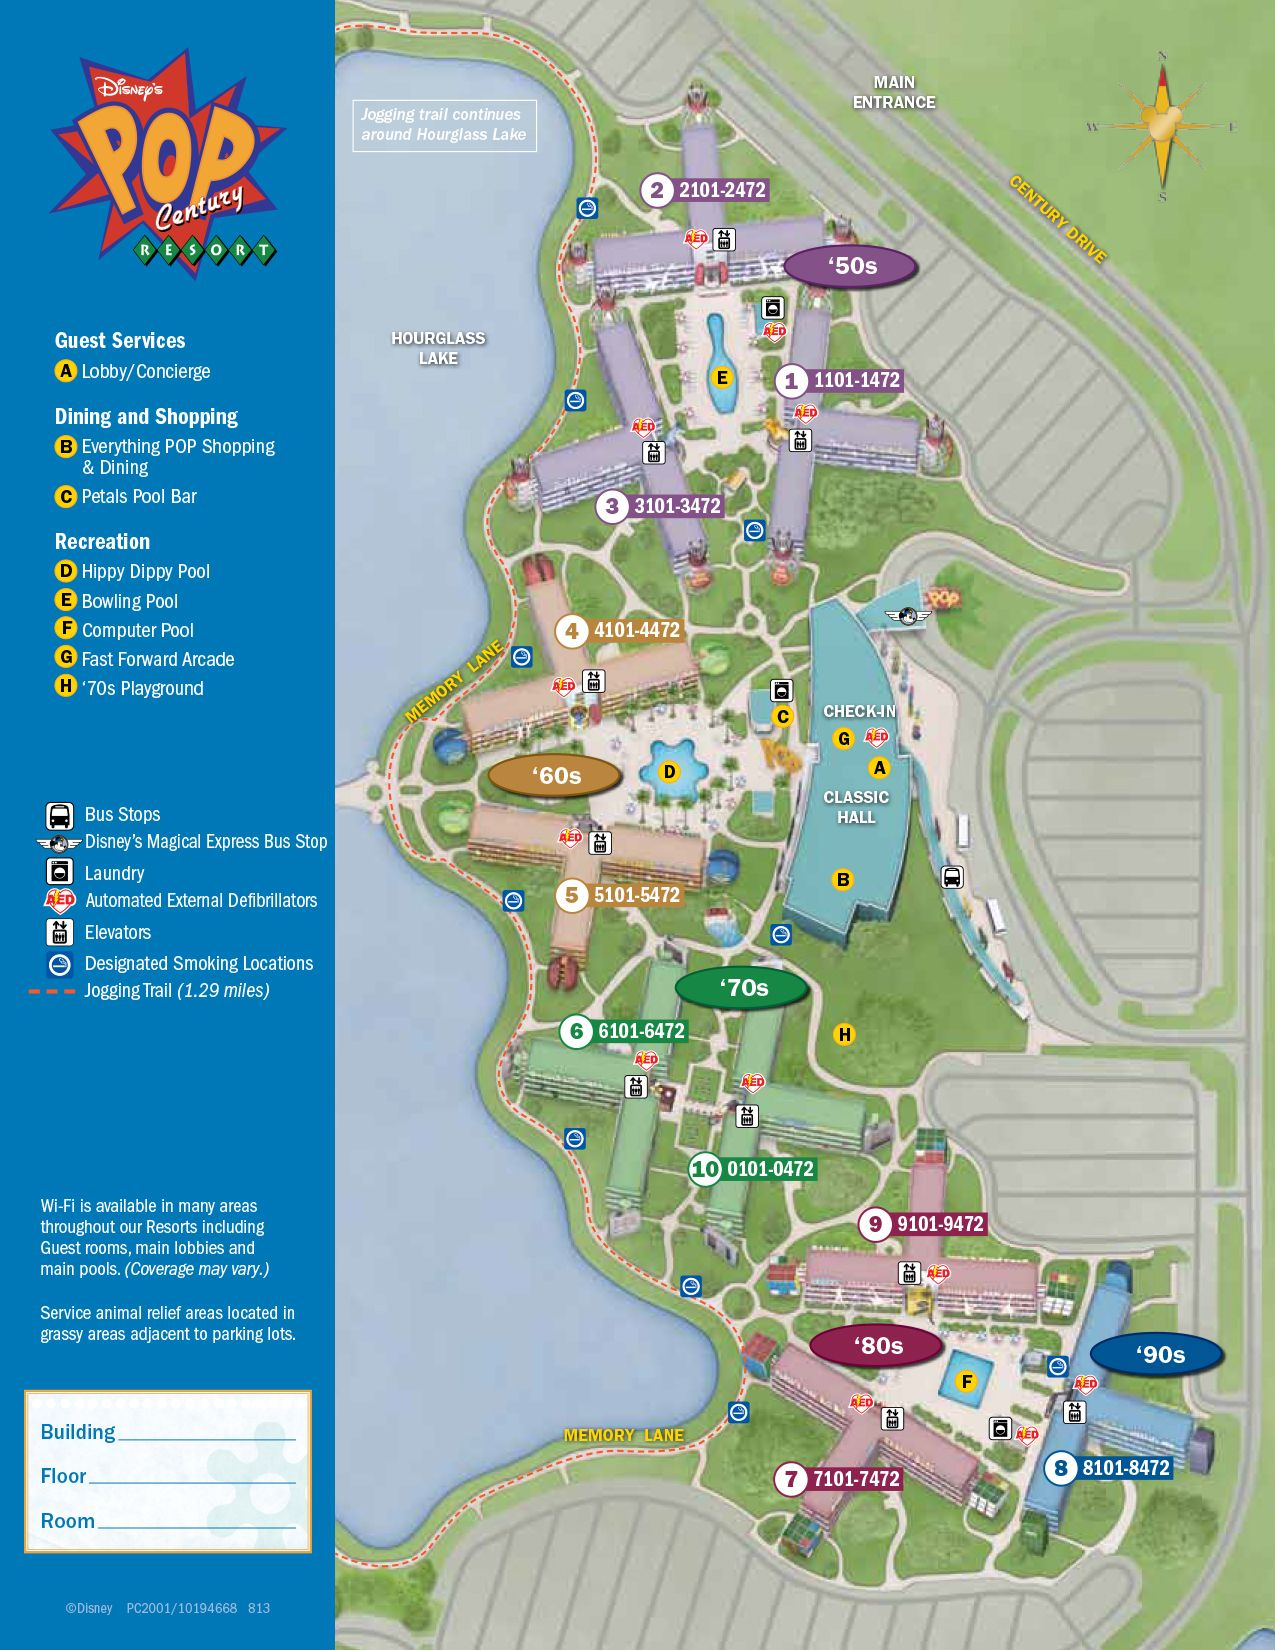 Pop Century Resort Map Disney Pop Century Resort Map Disney World Map Disney World Characters